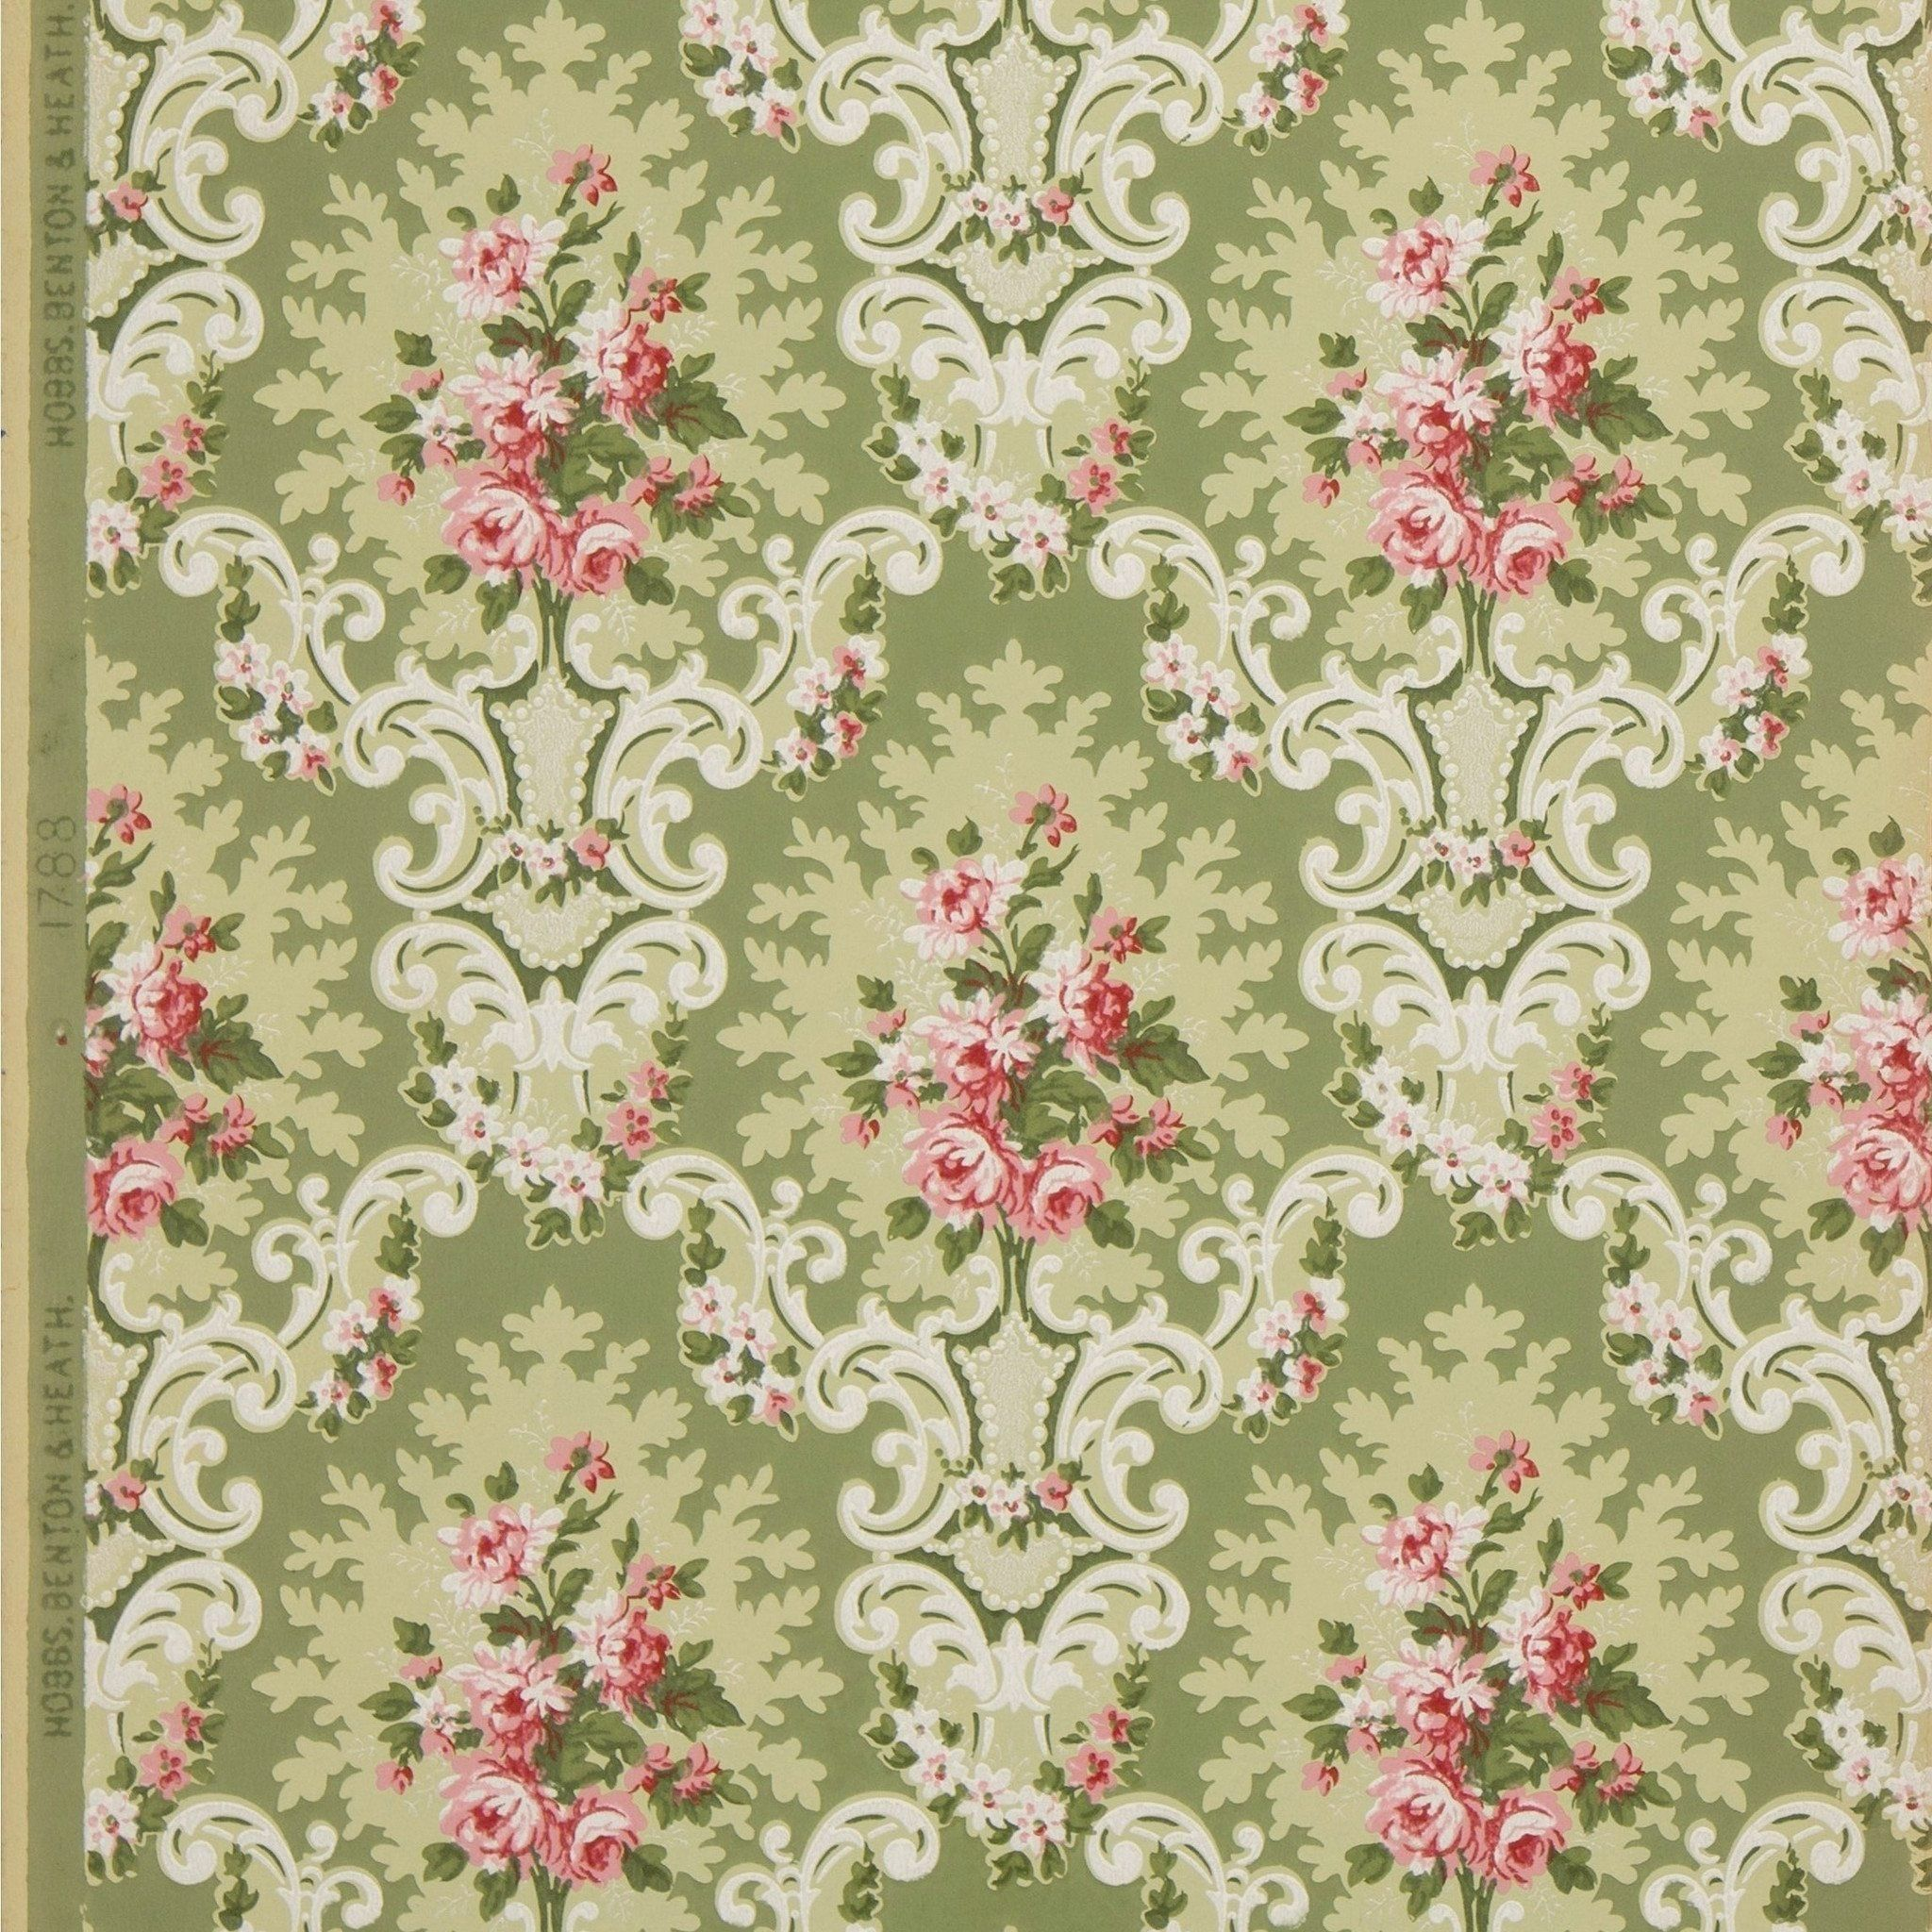 Rose Clusters In Rococo Cartouches Antique Wallpaper Remnant